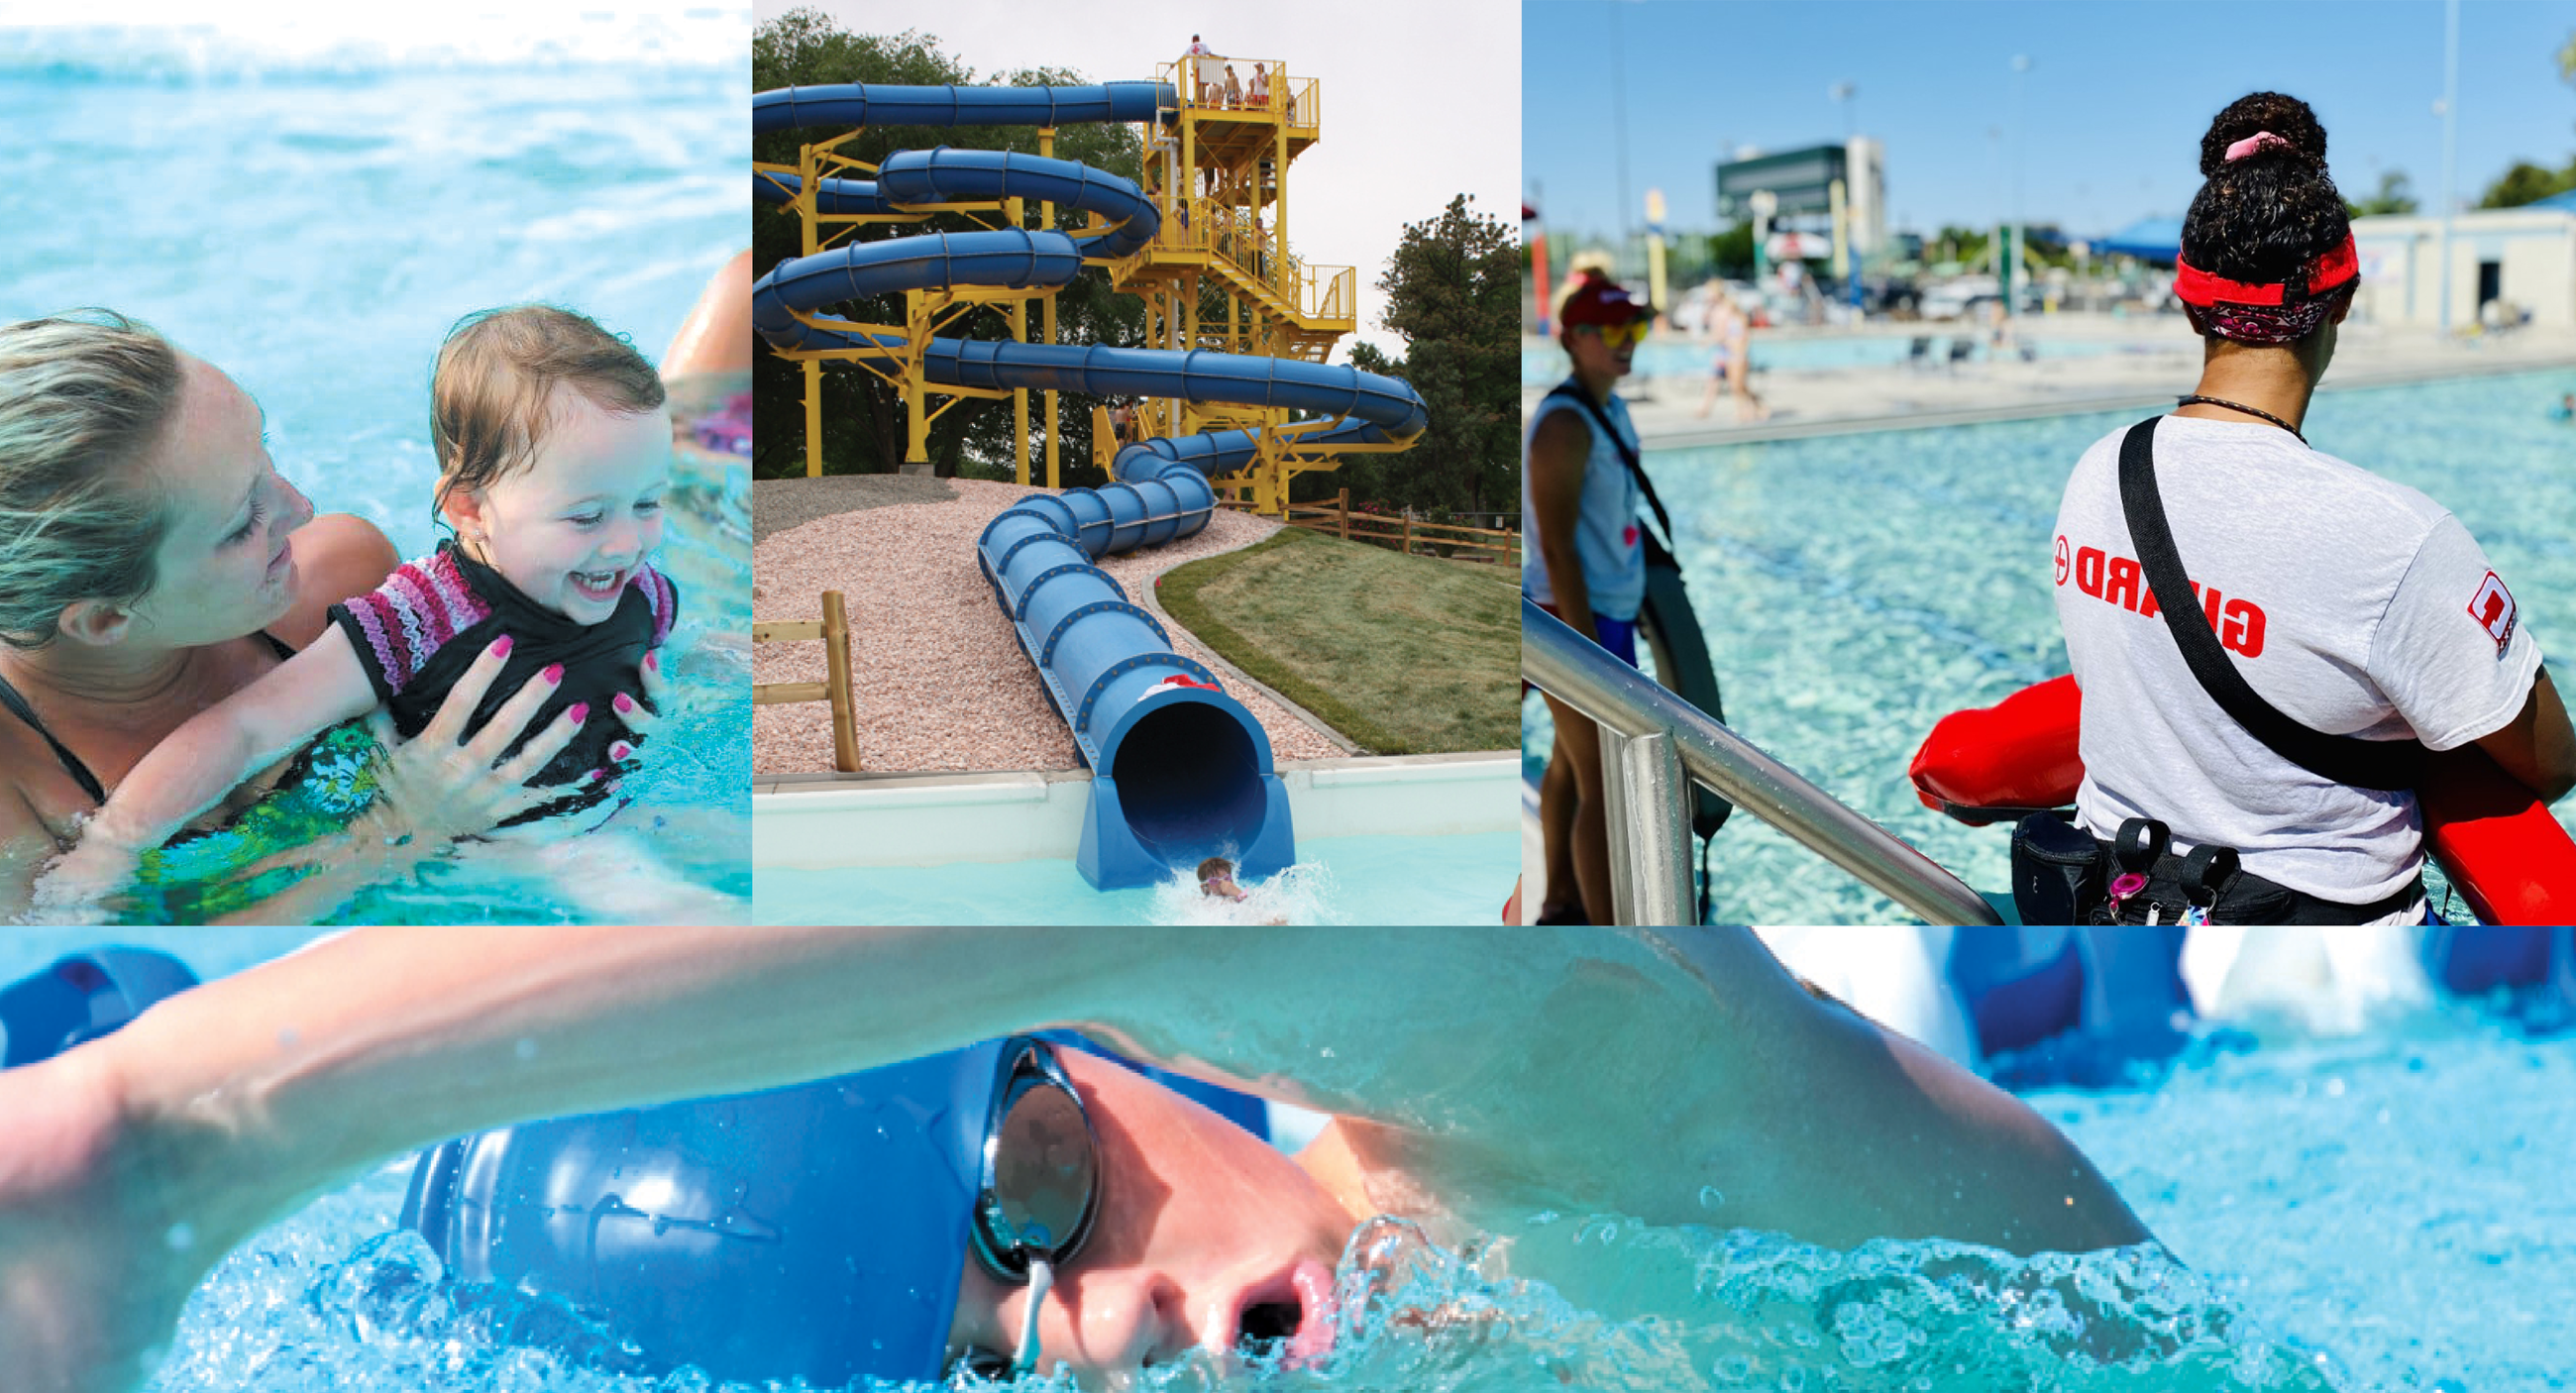 A collage of photos showcasing pools, lifeguards, swim lessons